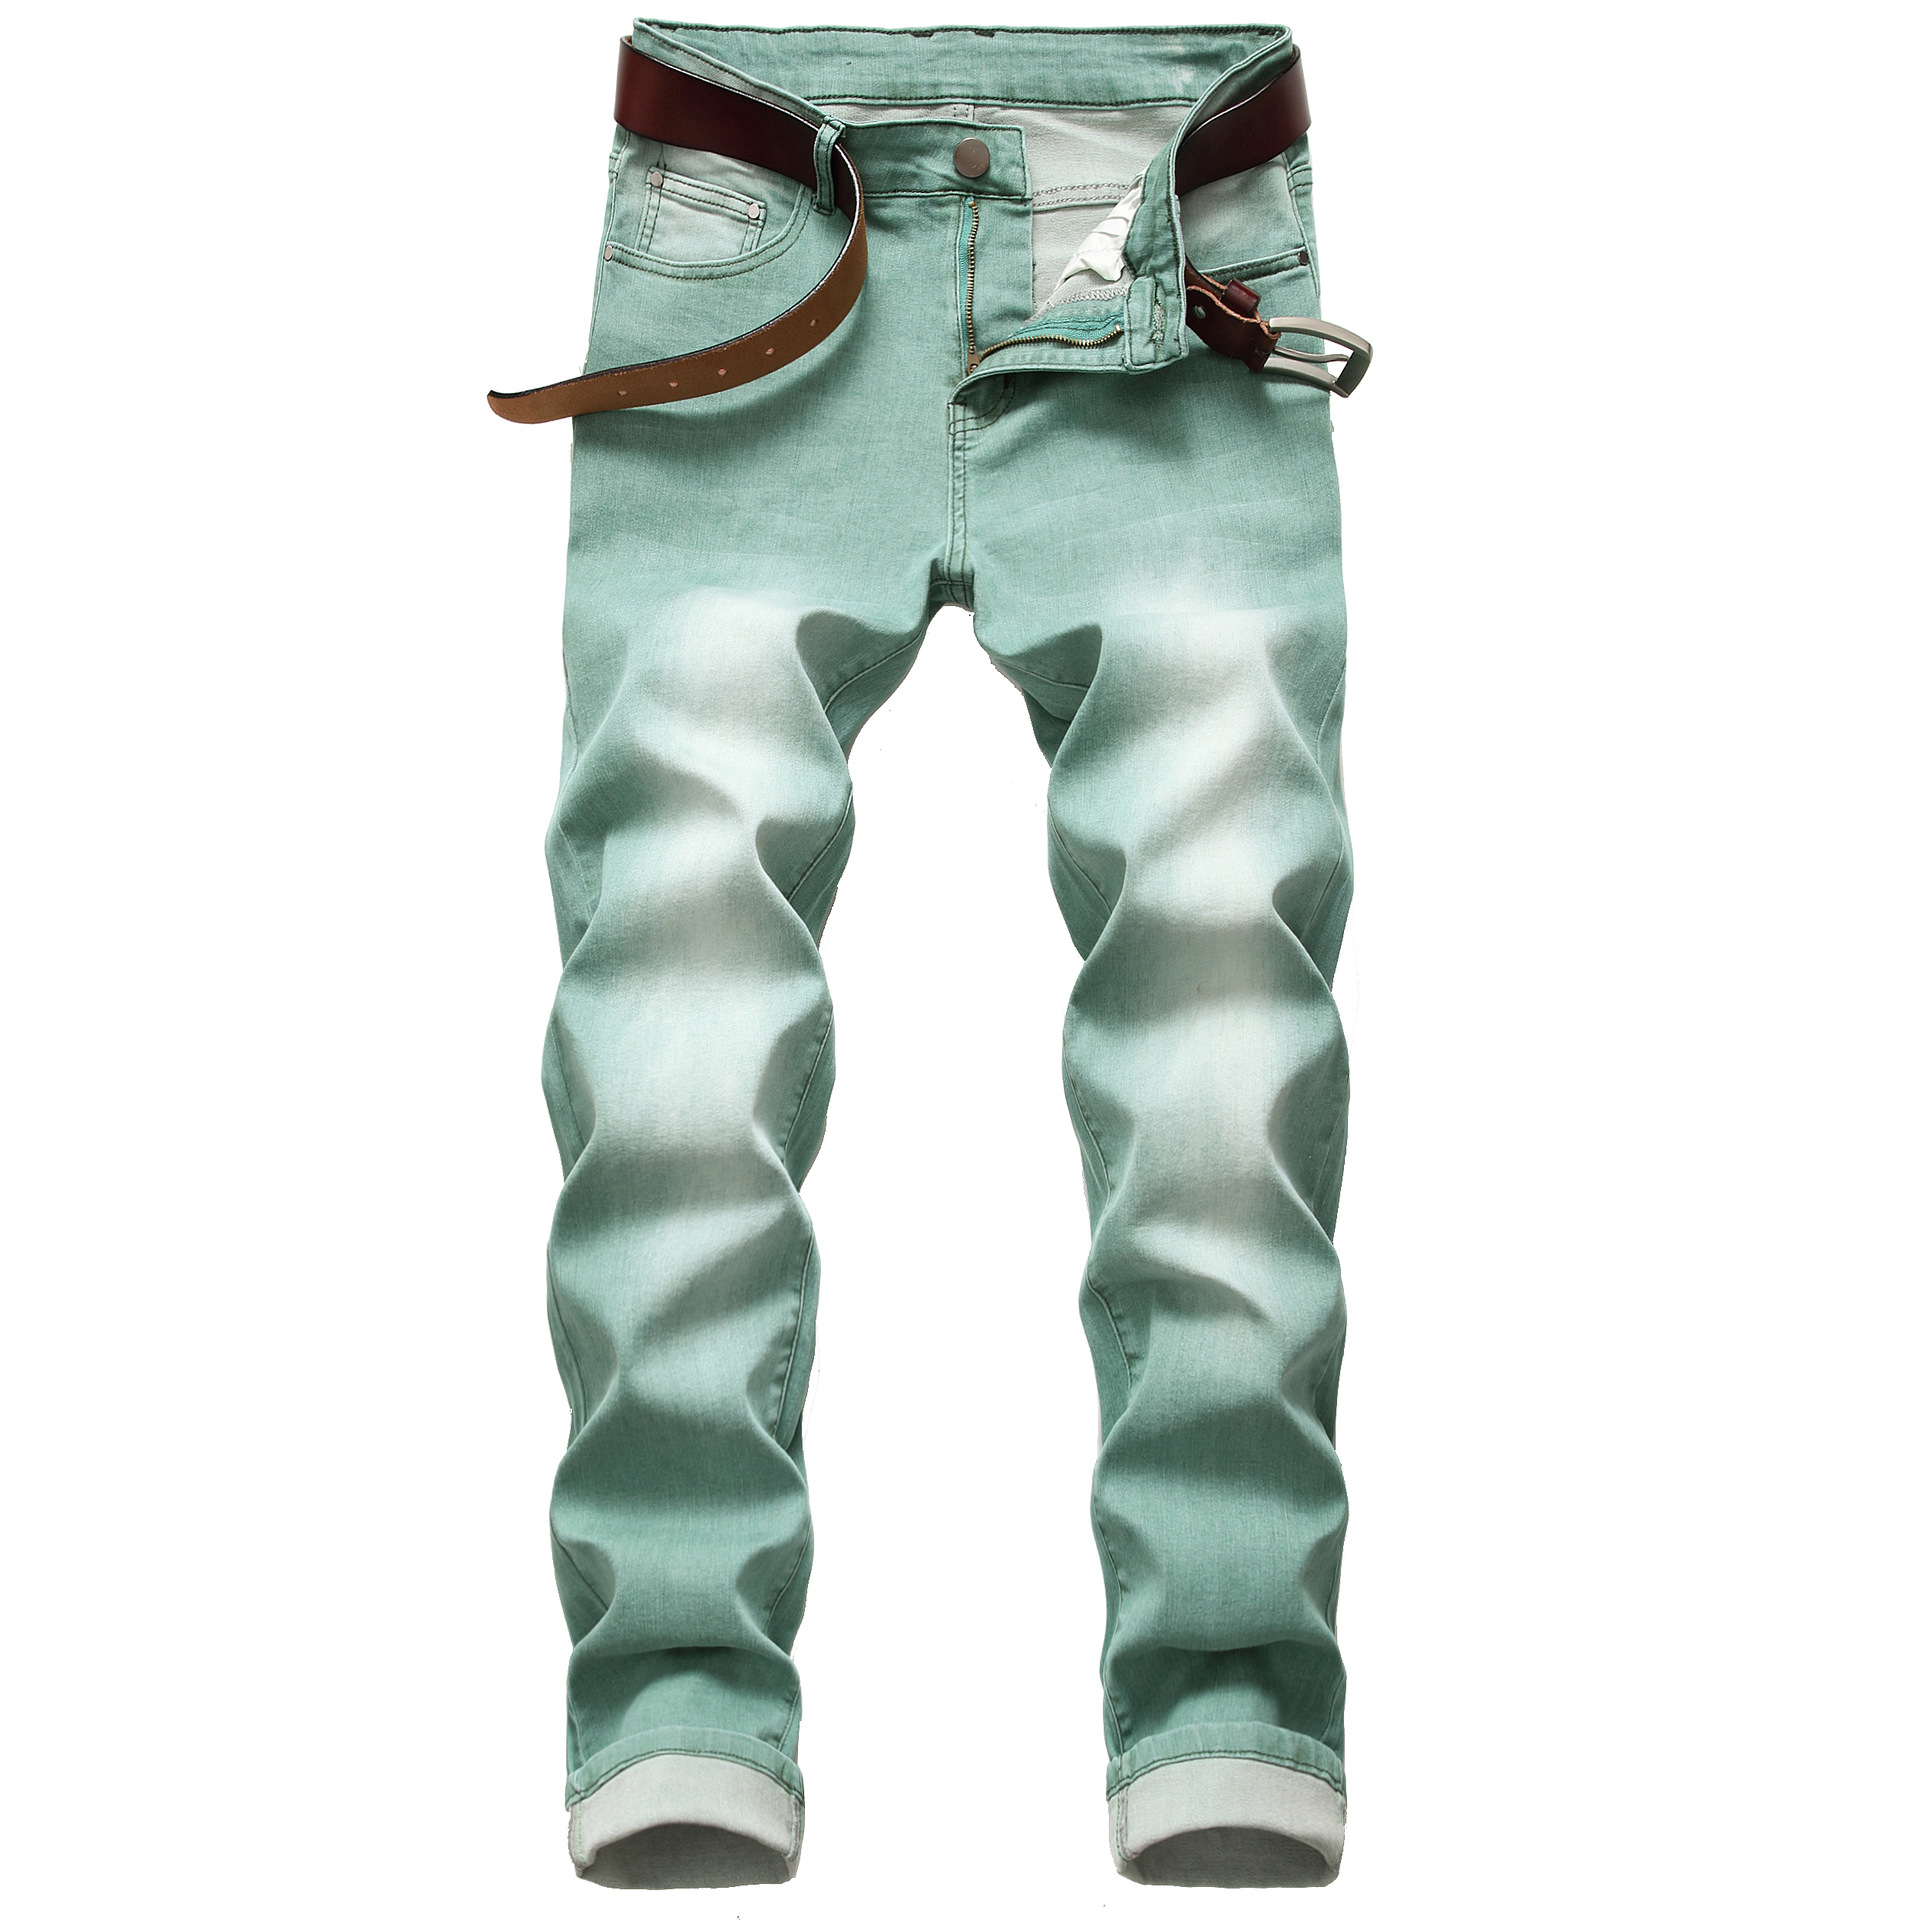 2020 AUTUMN Spring Men's Ripped Green Street HIP HOP Punk Stretch Bike Jeans Trendy Holes Straight Denim Trouers